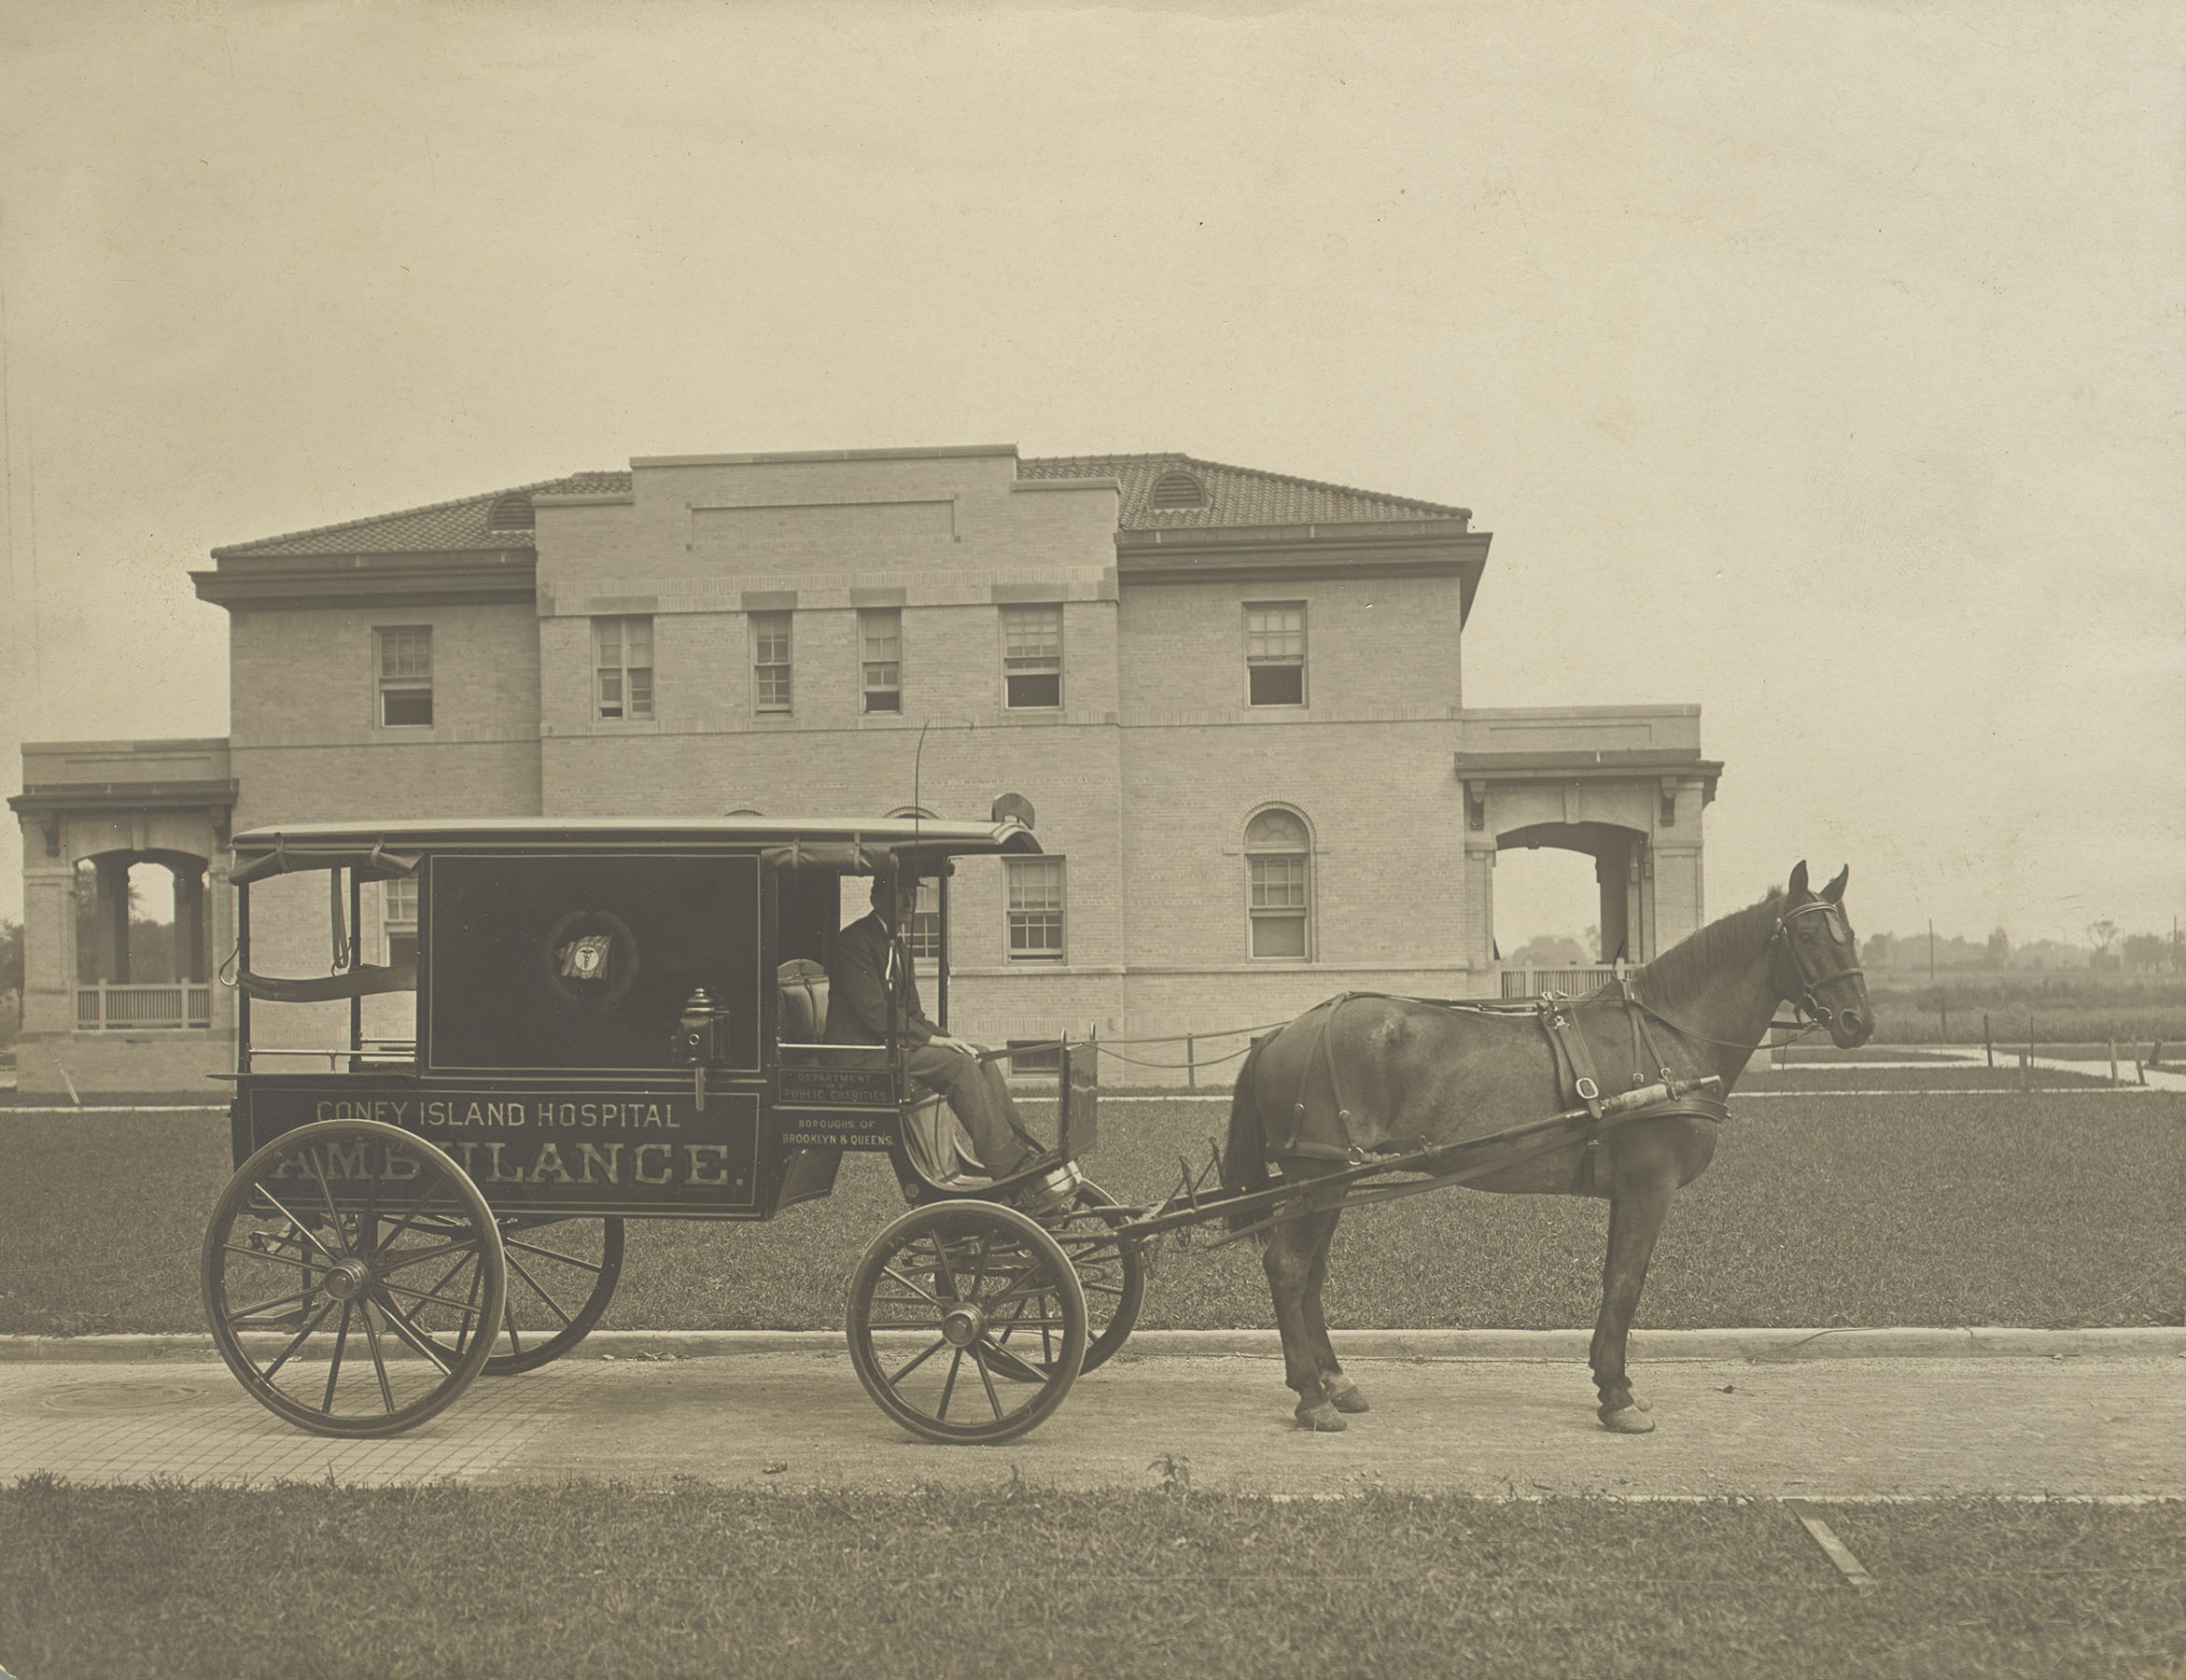 Horse-and-buggy ambulance in front of (Old) Coney Island Hospital, ca. 1900. Department of Public Charities Collection, NYC Municipal Archives.